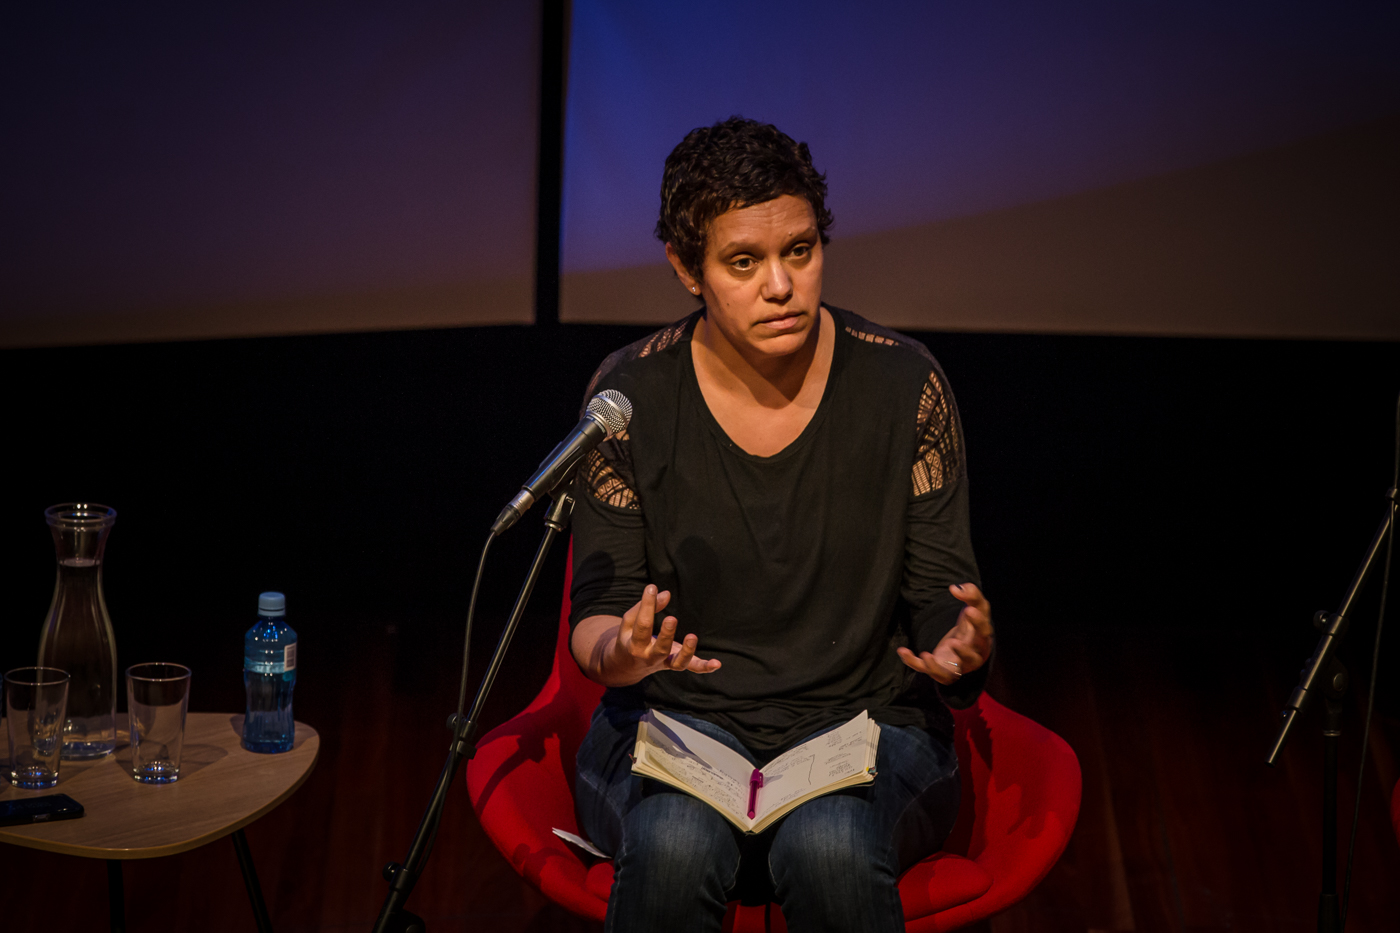 Displacing Whiteness in the Arts: Discussion with Angharad Wynne-Jones, Arts House Artistic Director.